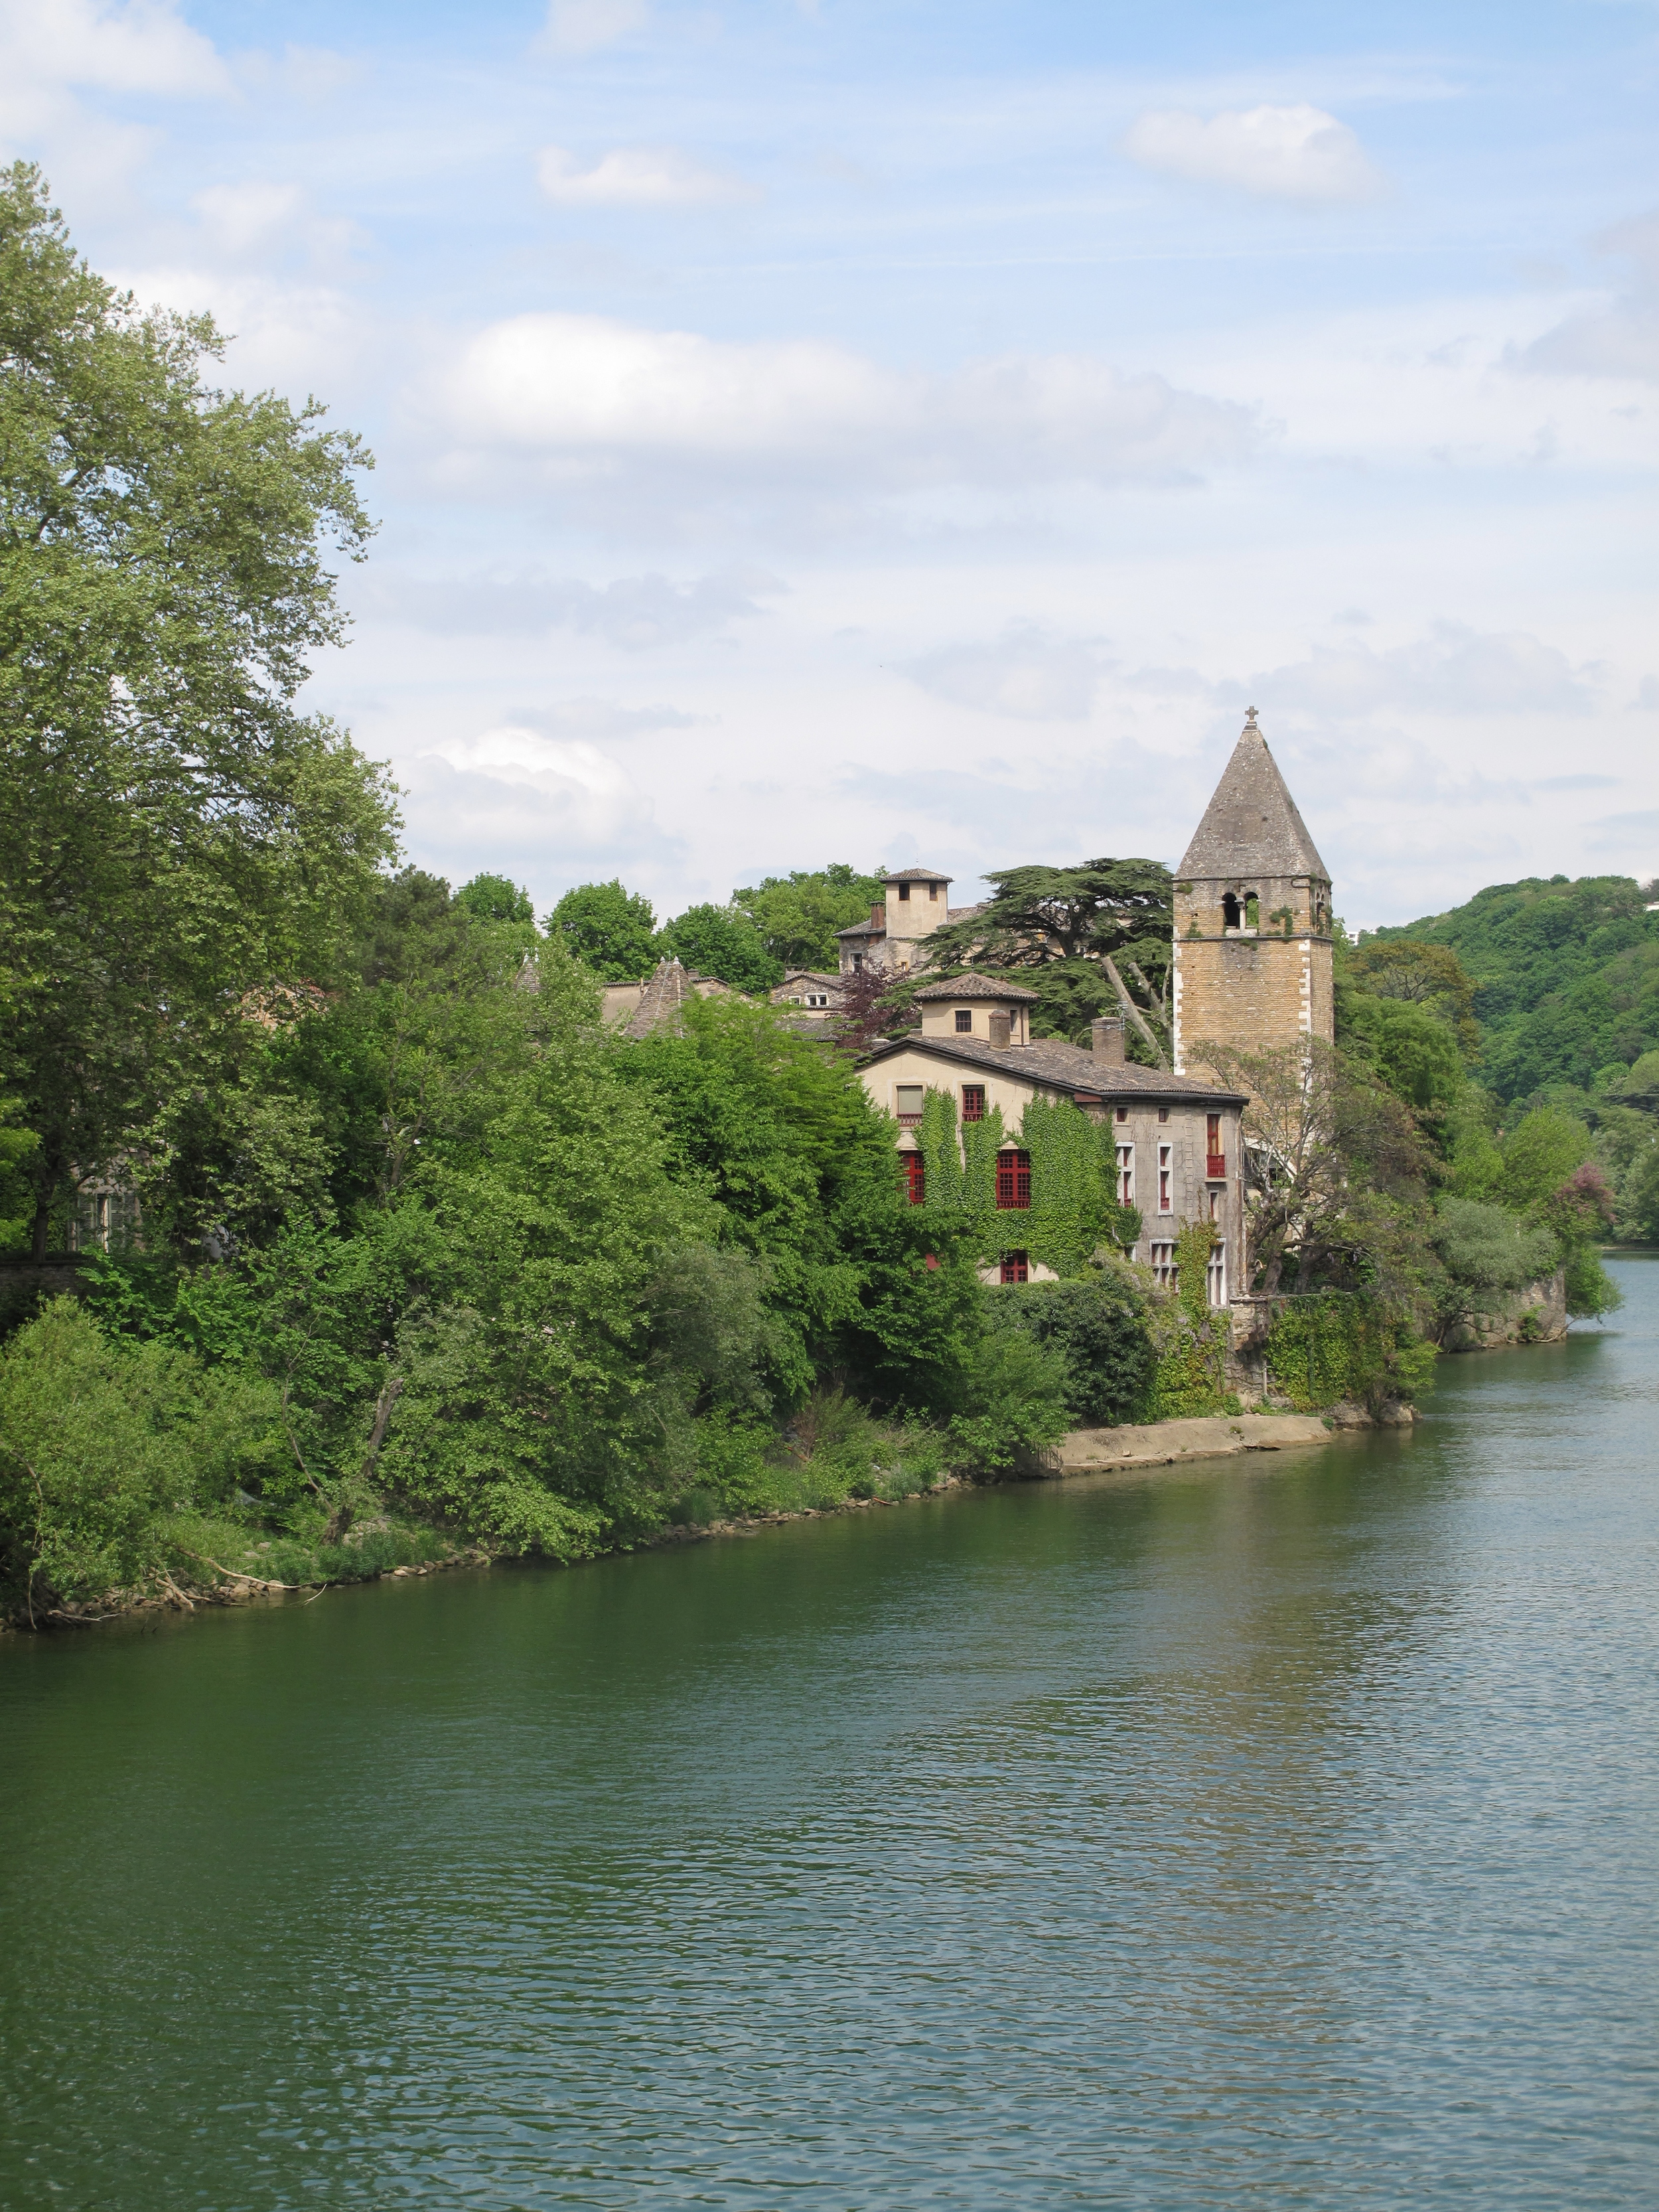 Île Barbe island of medieval castles and churches in Lyon